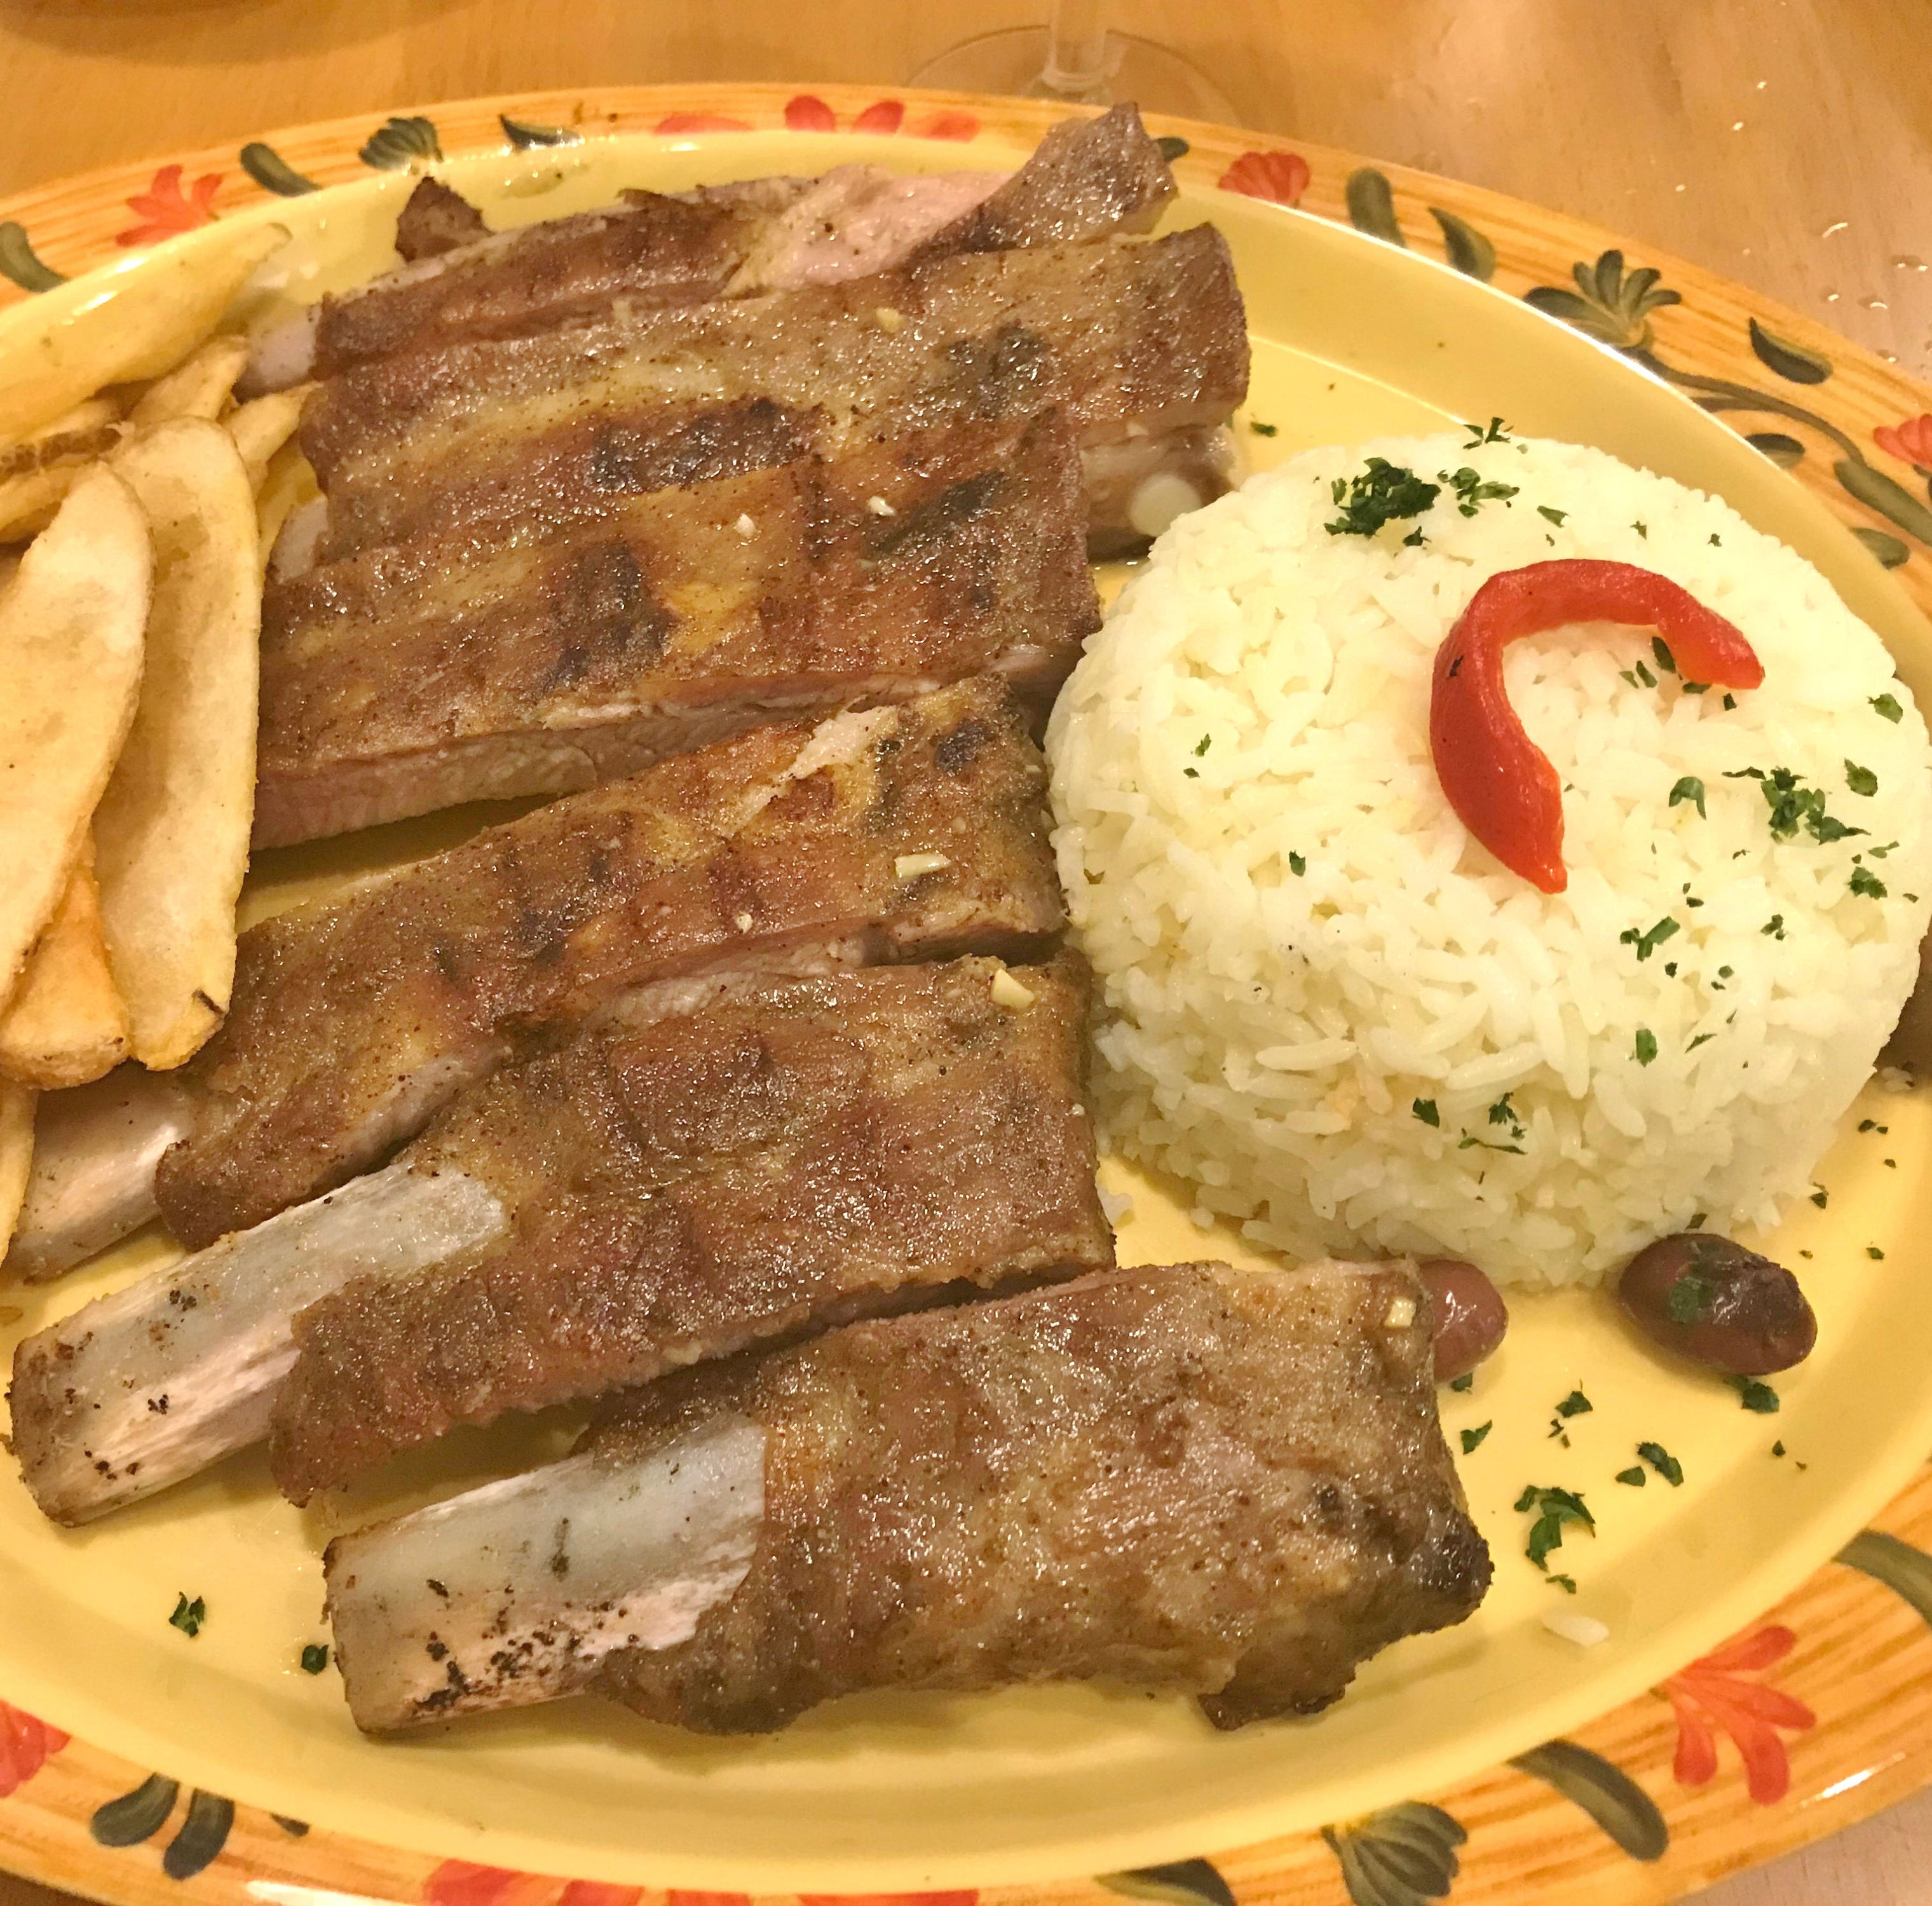 Luso Portuguese Grille brings barbecue and more to Tradition in Port St. Lucie